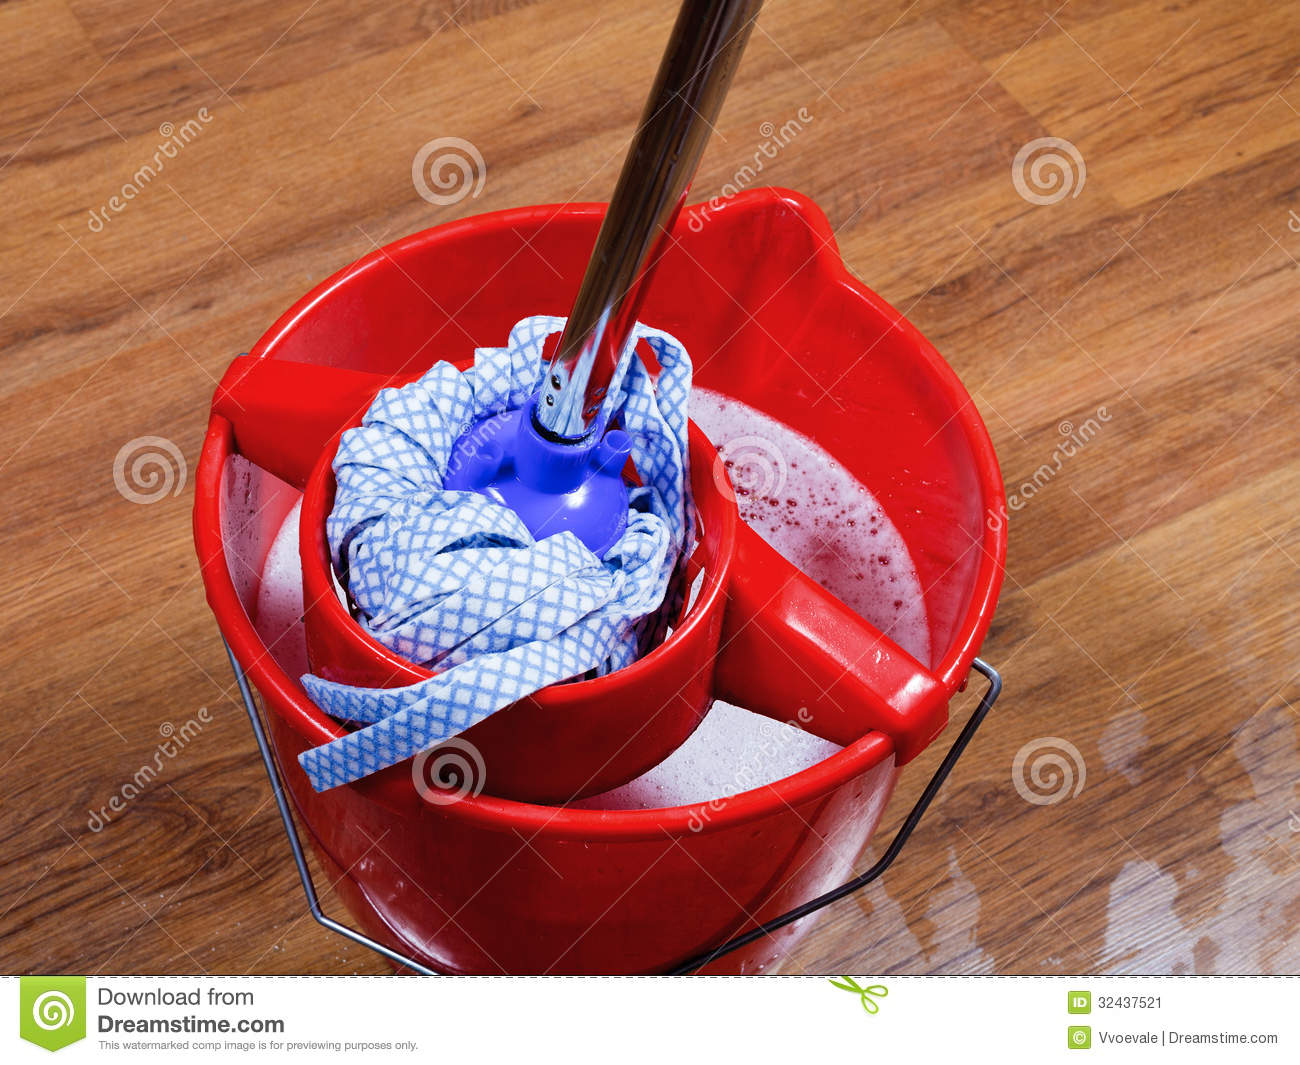 Mop Red Bucket Water Stock Image